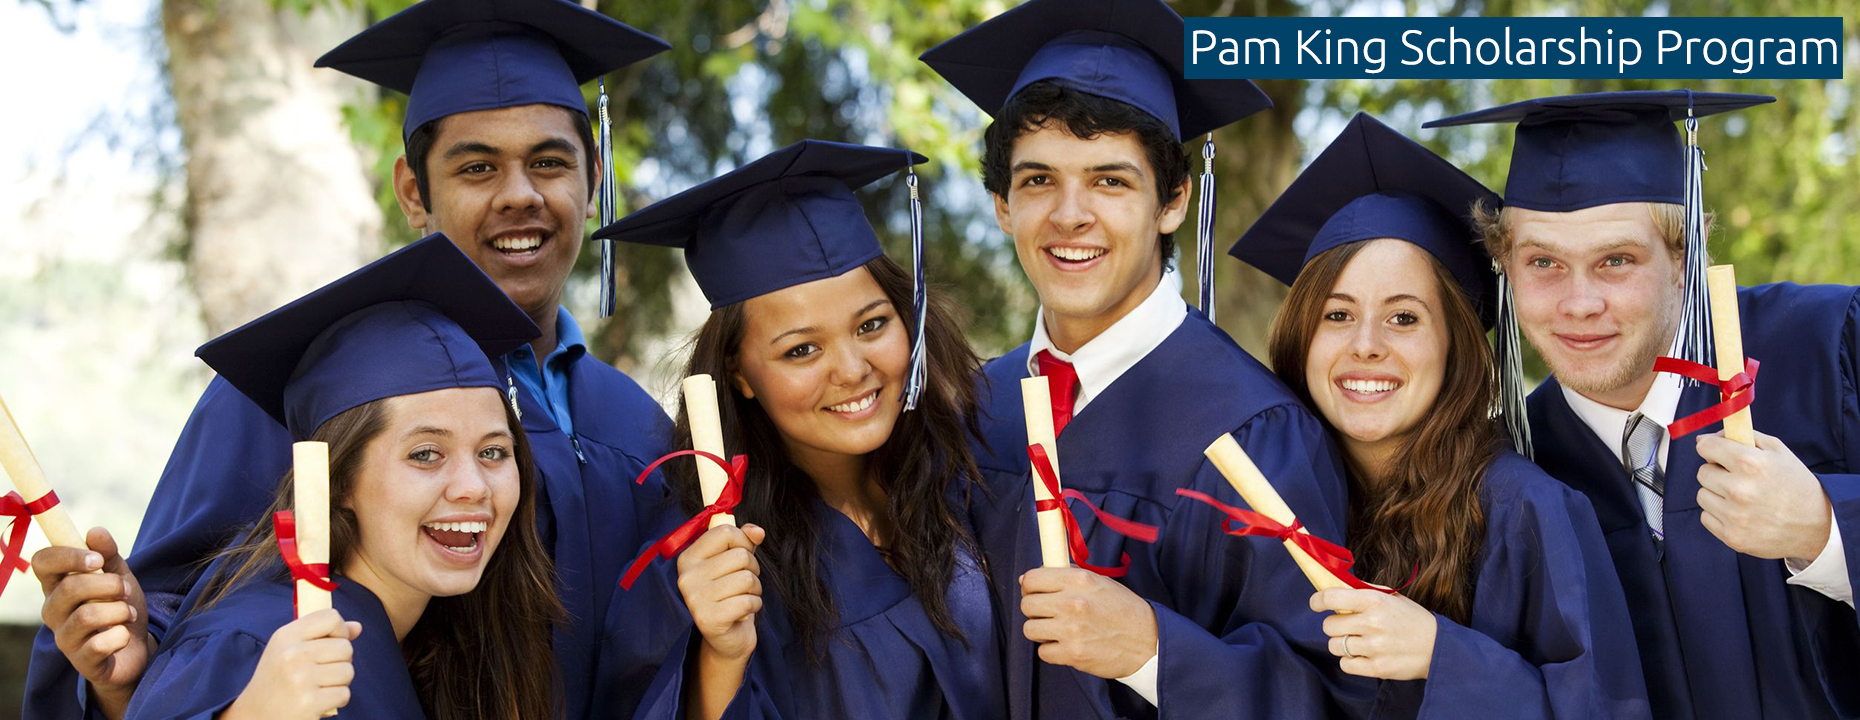 Pam King Scholarship Program